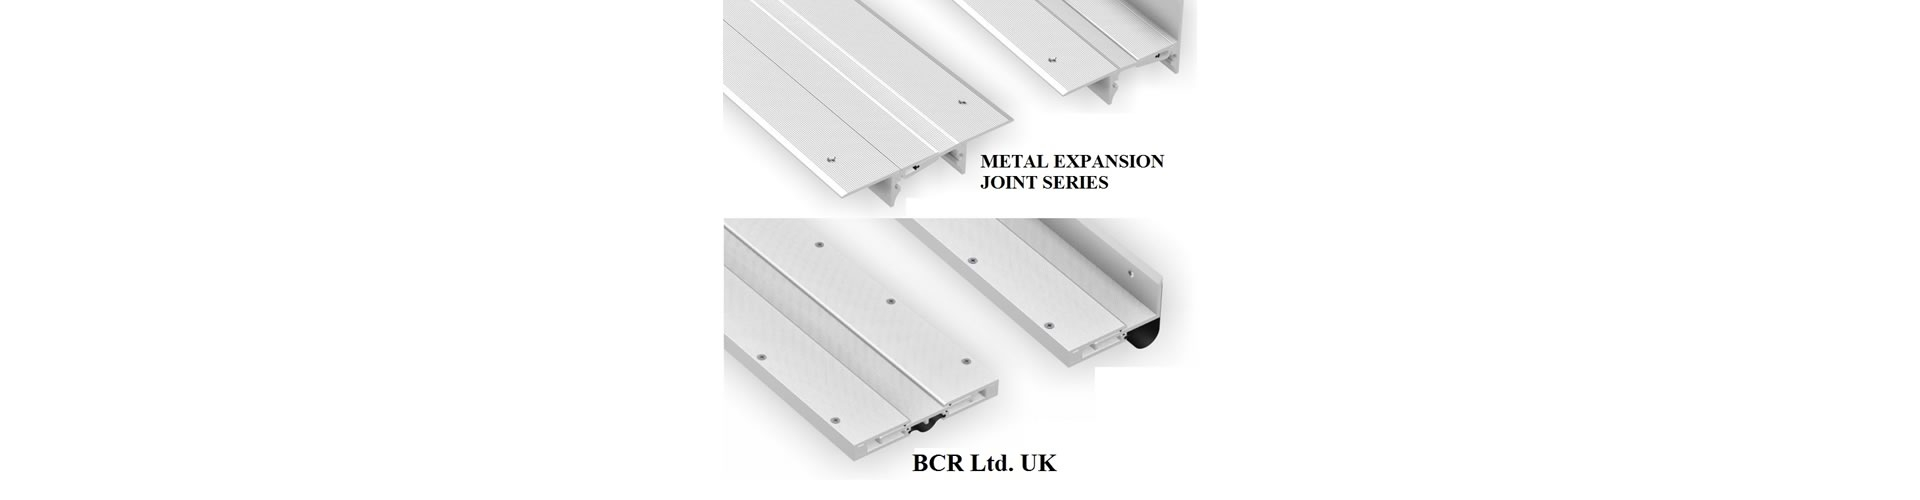 BCR Metal Expansion Joint Series